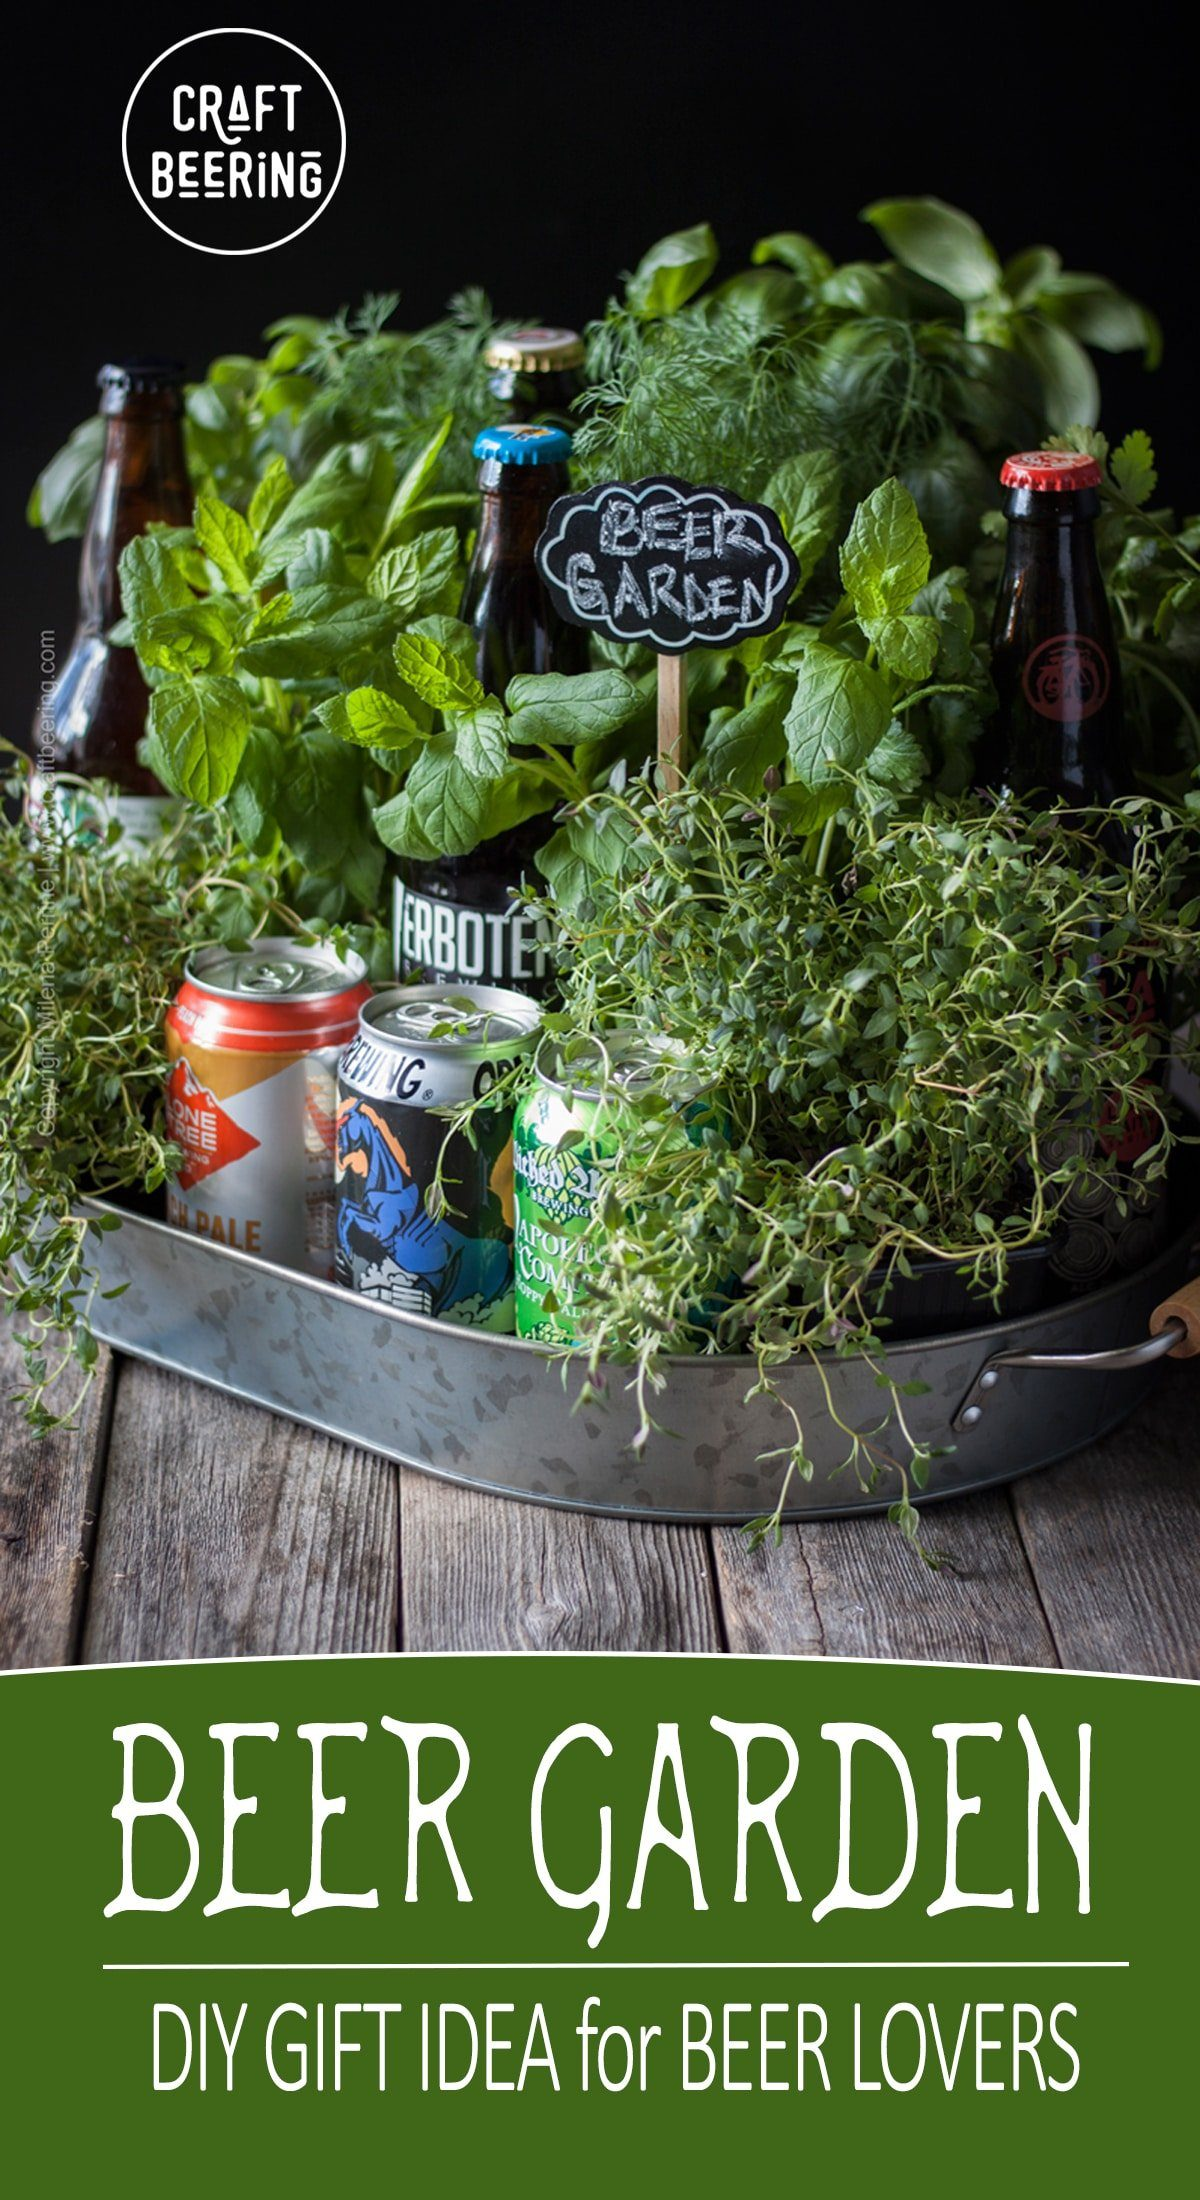 Beer garden gift idea. DIY gift for beer lovers. #beergarden #biergarten #beergift #beerlovergiftidea #herbgarden #fathersday #mothersday